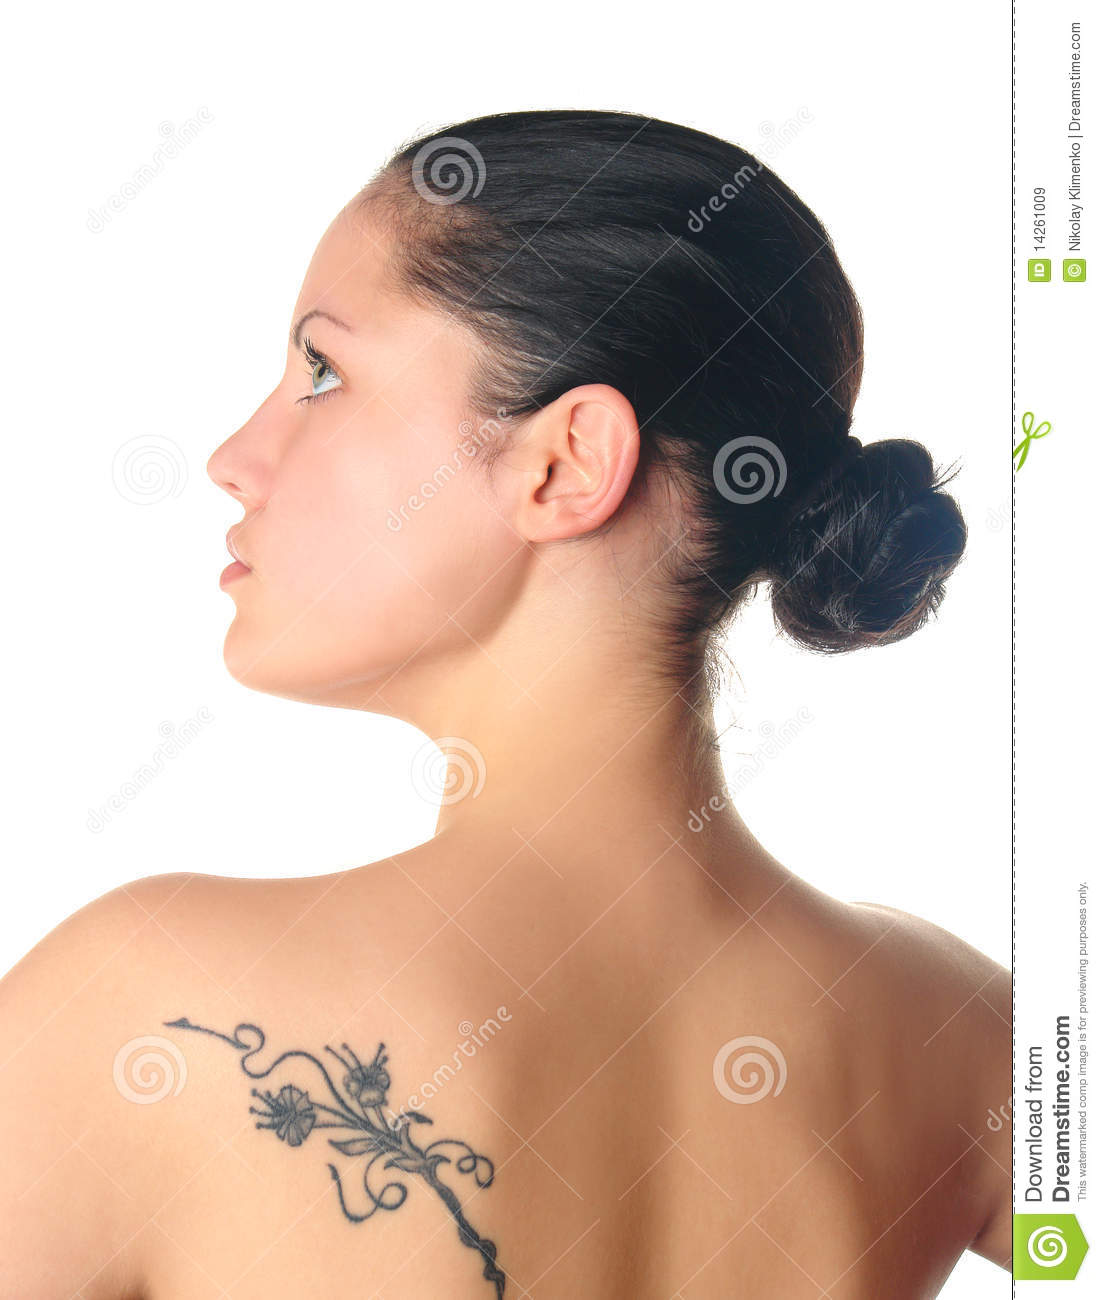 Tattoo Woman Photo: Woman With Tattoo Profile Royalty Free Stock Images